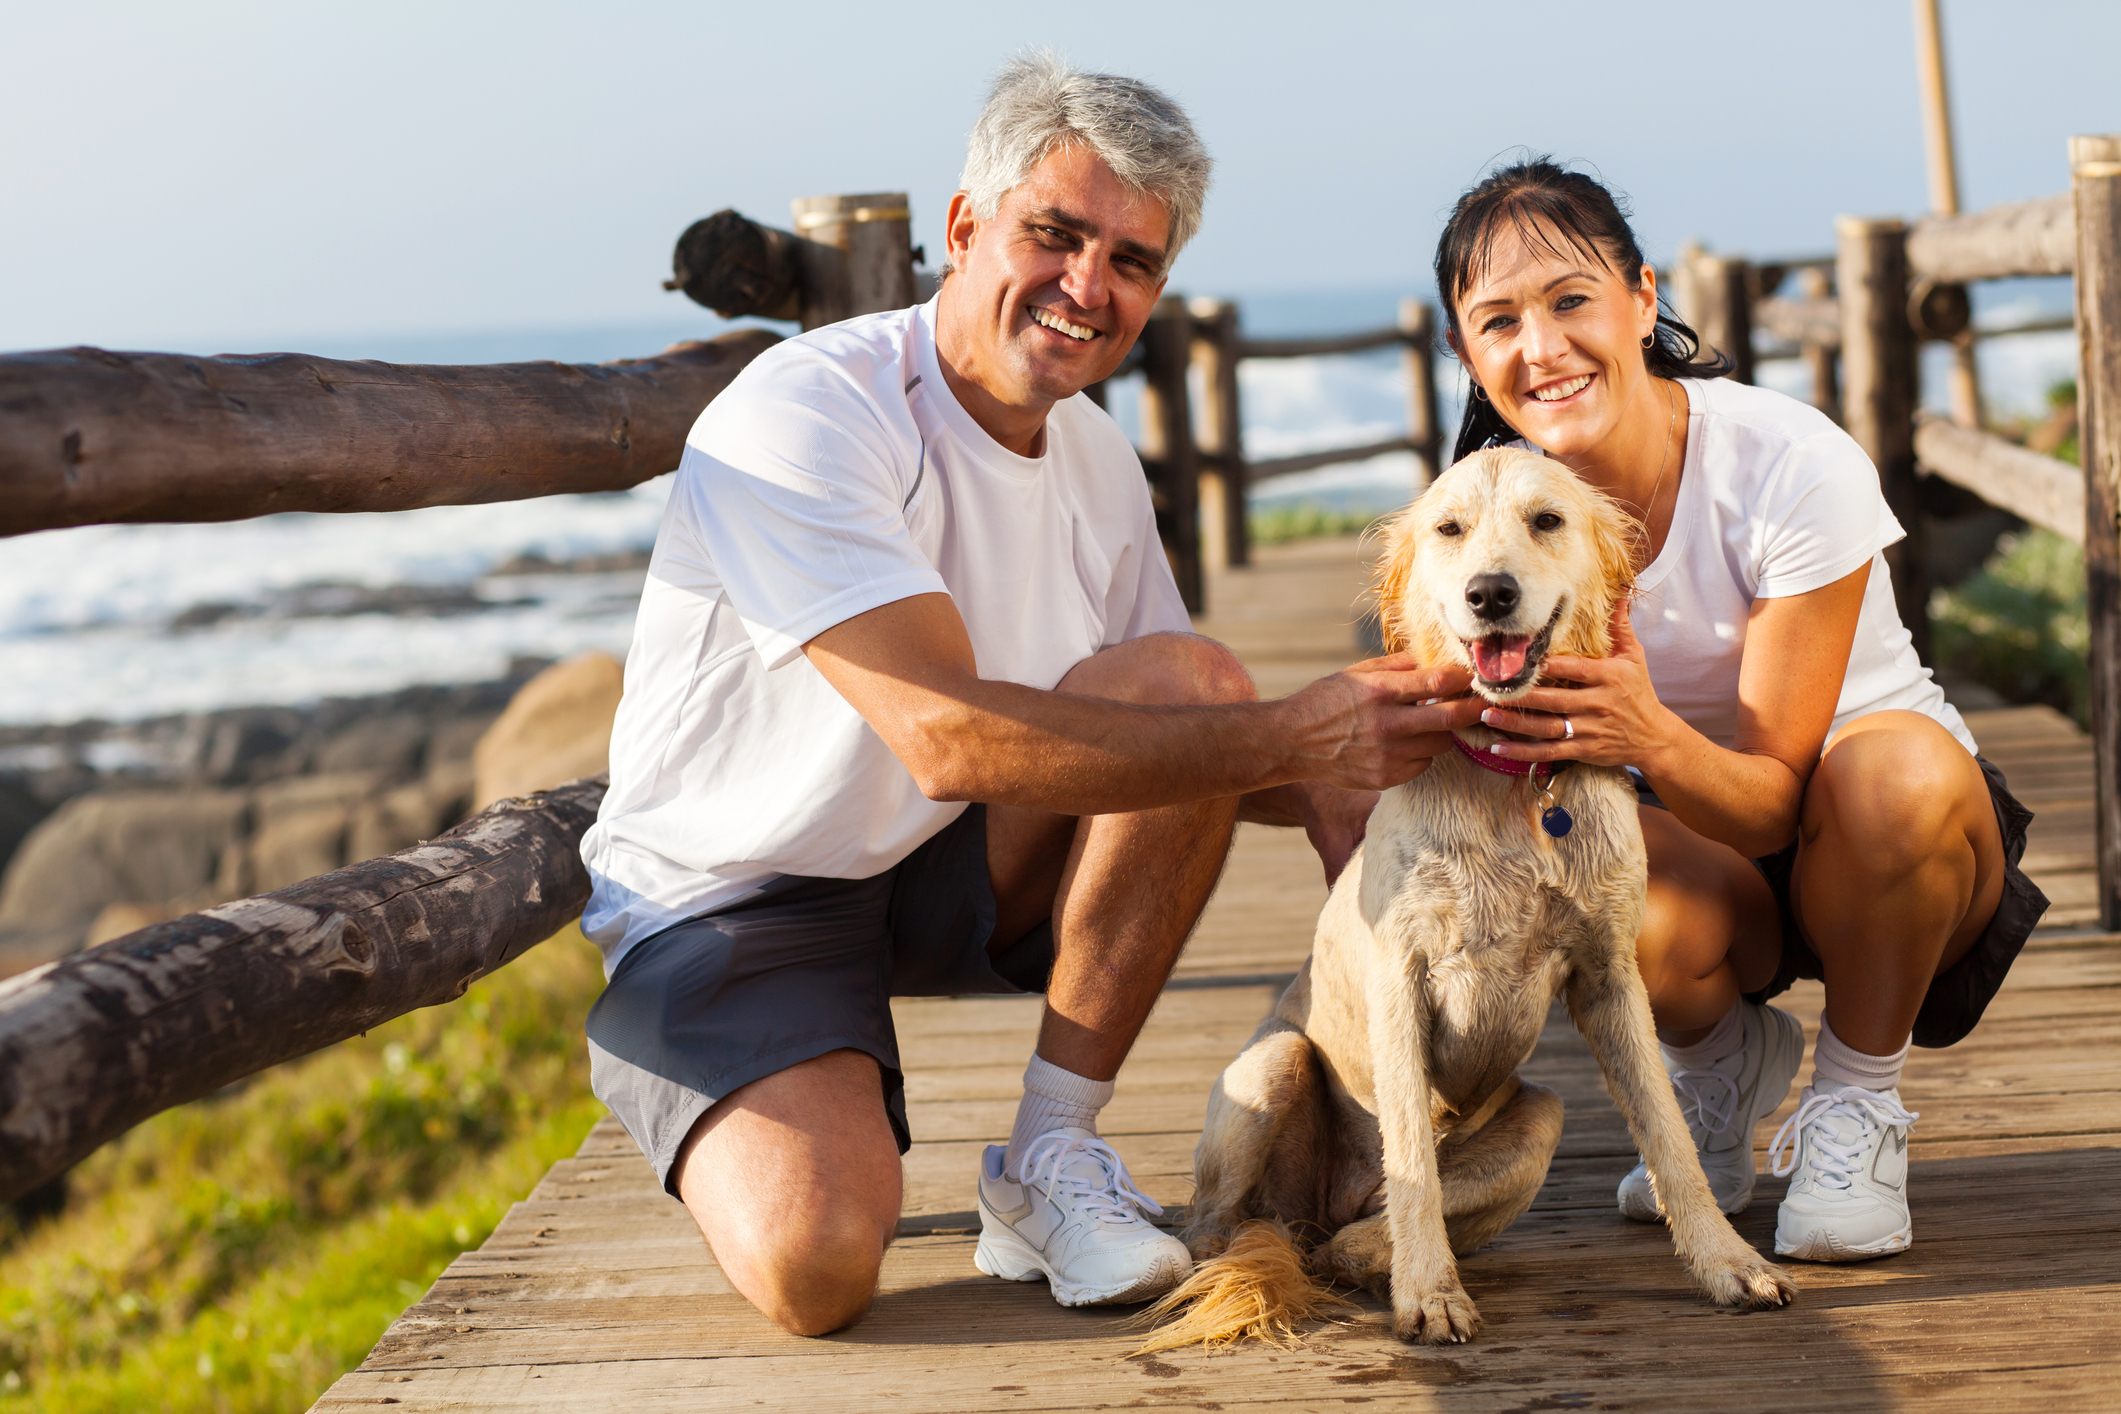 Over 40 couple with their dog and wondering how long to date before marriage.